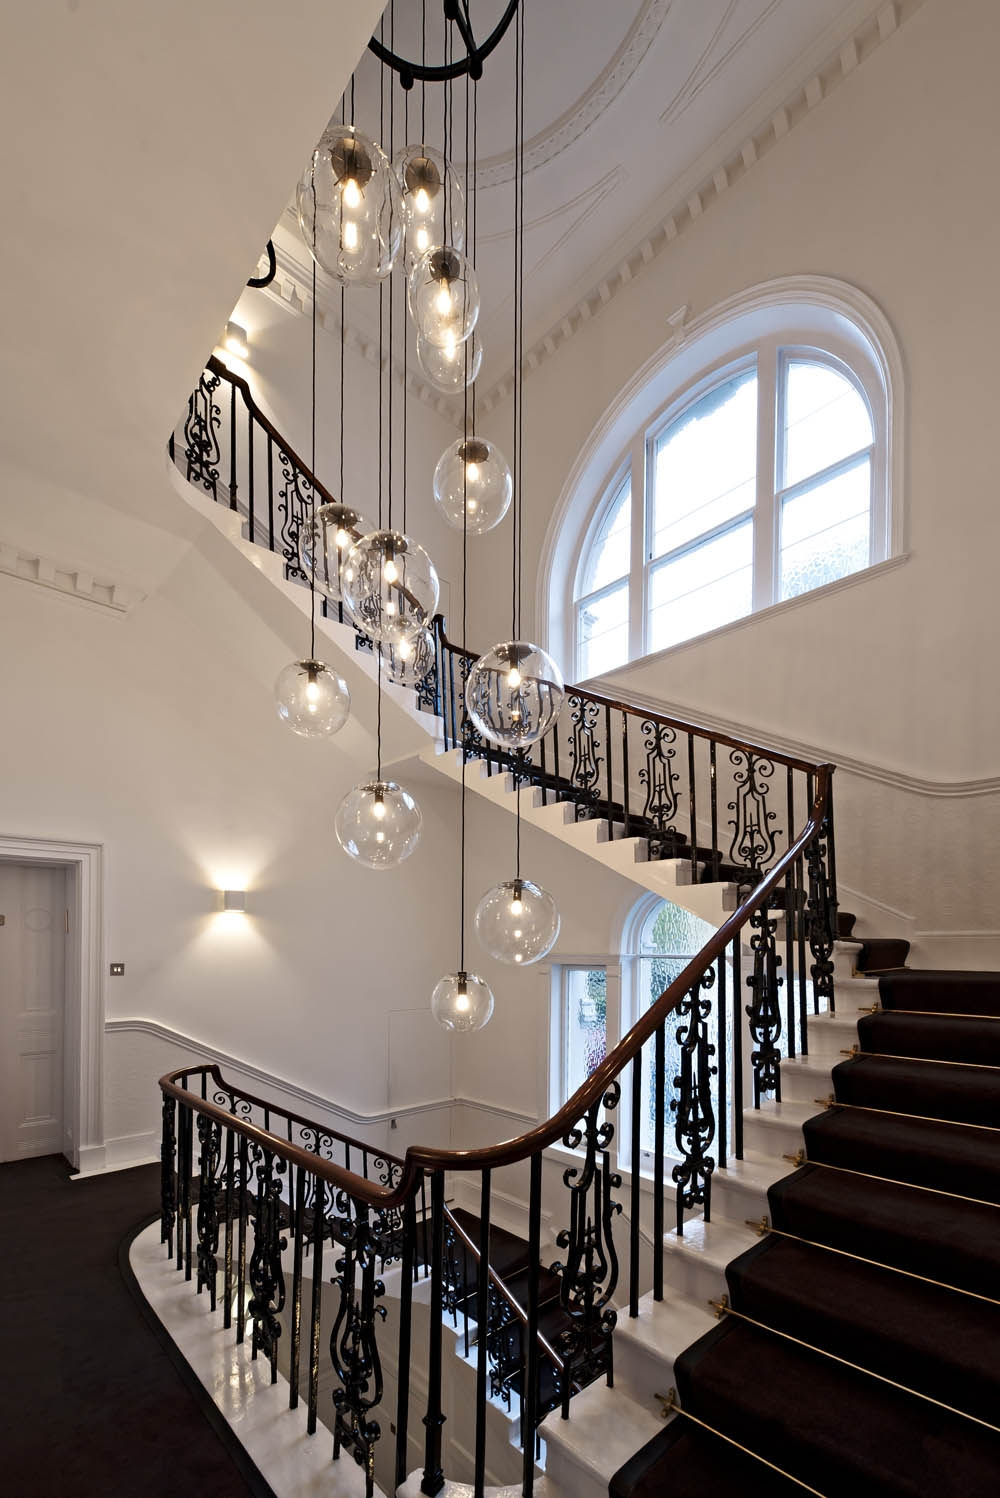 Obviously Over The Top But I Like The Idea For The Home Intended For Staircase Chandeliers (#11 of 12)